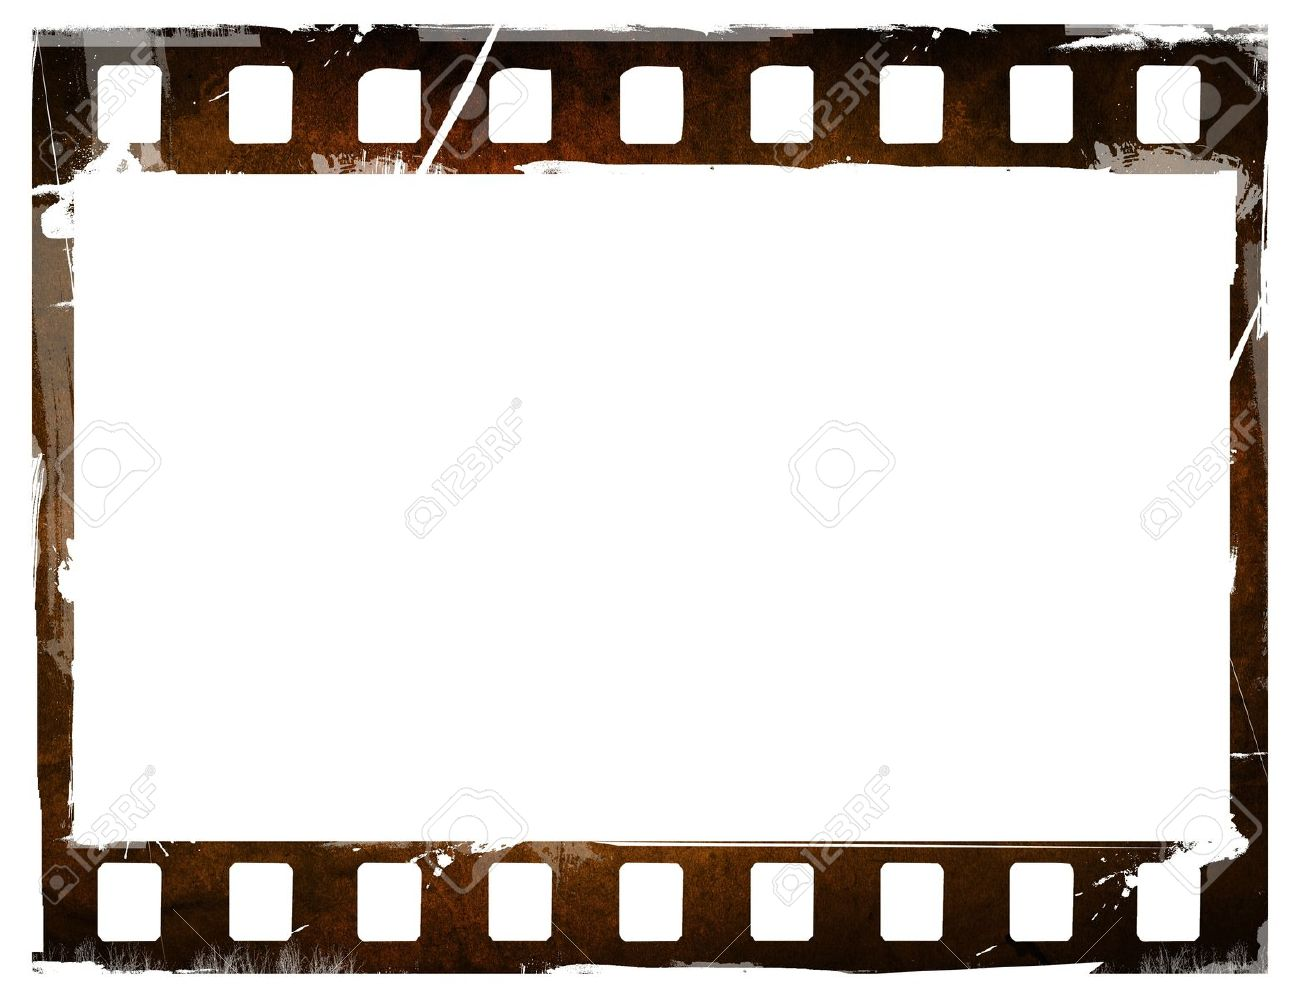 1300x998 Old Blank Film Strip Frame Background Stock Photo 37841605